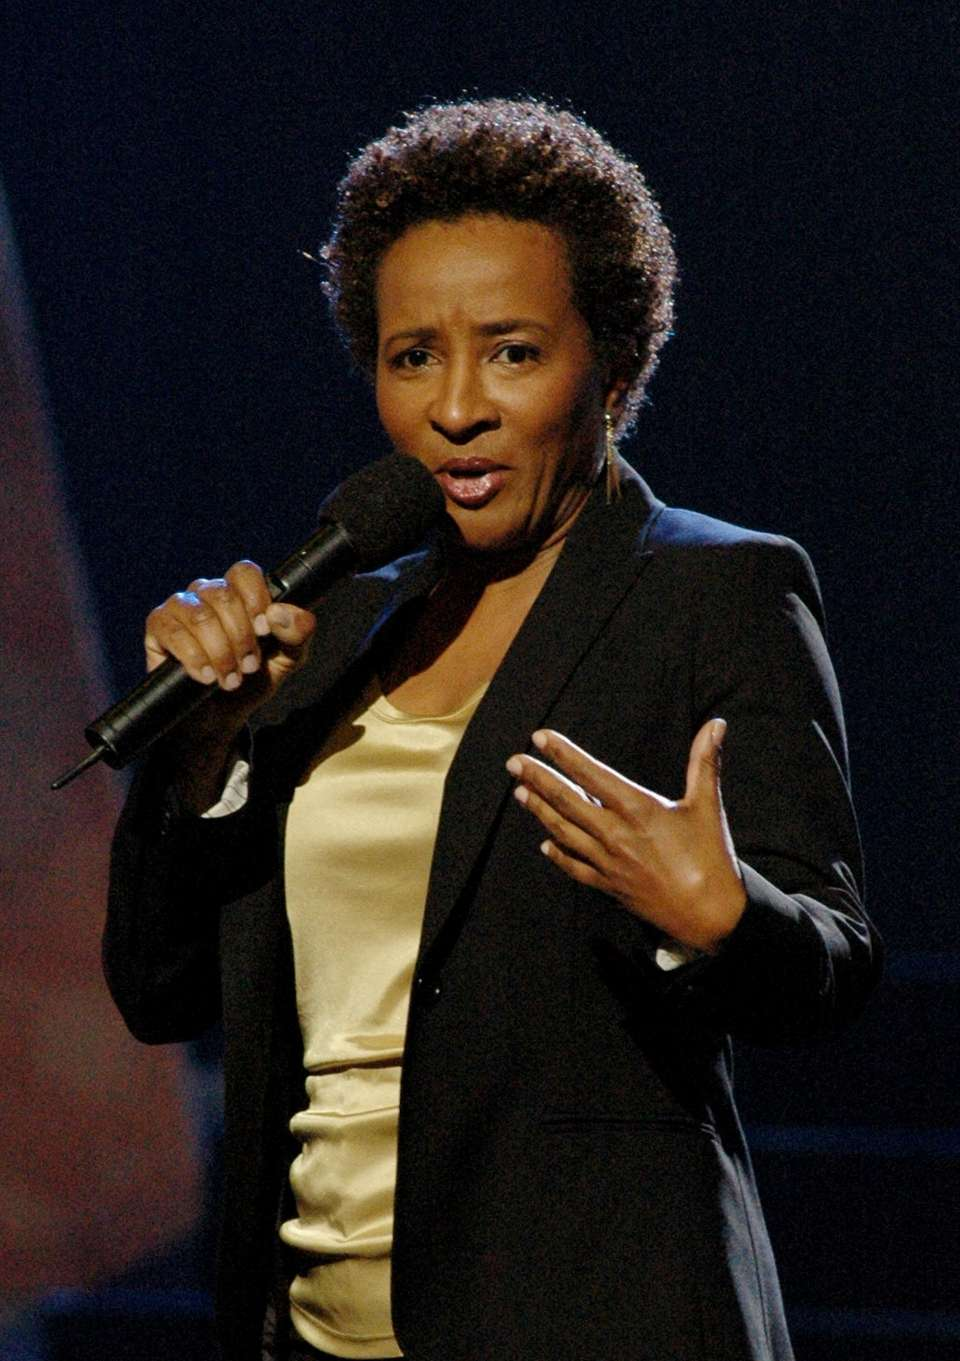 Comedian Wanda Sykes announced on